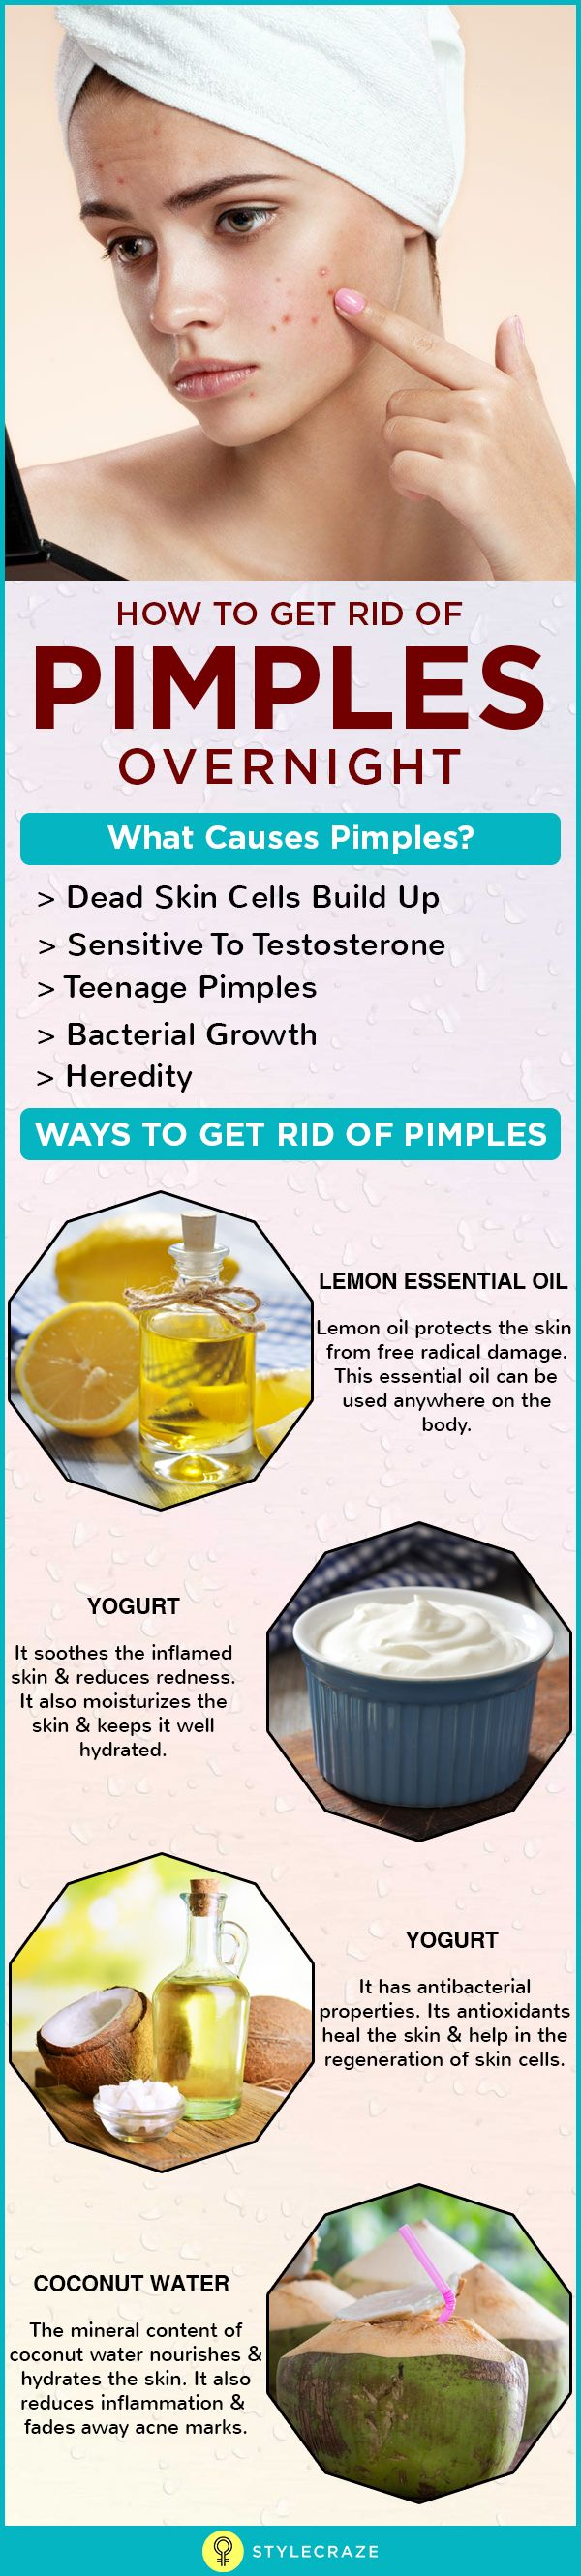 Pimples or acne are skin lesions/inflammations that occur when the sebaceous glands (oil glands) of the skin get infected with bacteria and swell up. Pimples are also known as pustules or papules, spots, and zits. The sebaceous glands that are present throughout the skin, except in the palms and soles, secrete a waxy or oily substance called sebum. The sebum helps to maintain the oil balance of the skin and makes it look healthy. When there is any abnormality in the sebaceous gland.....